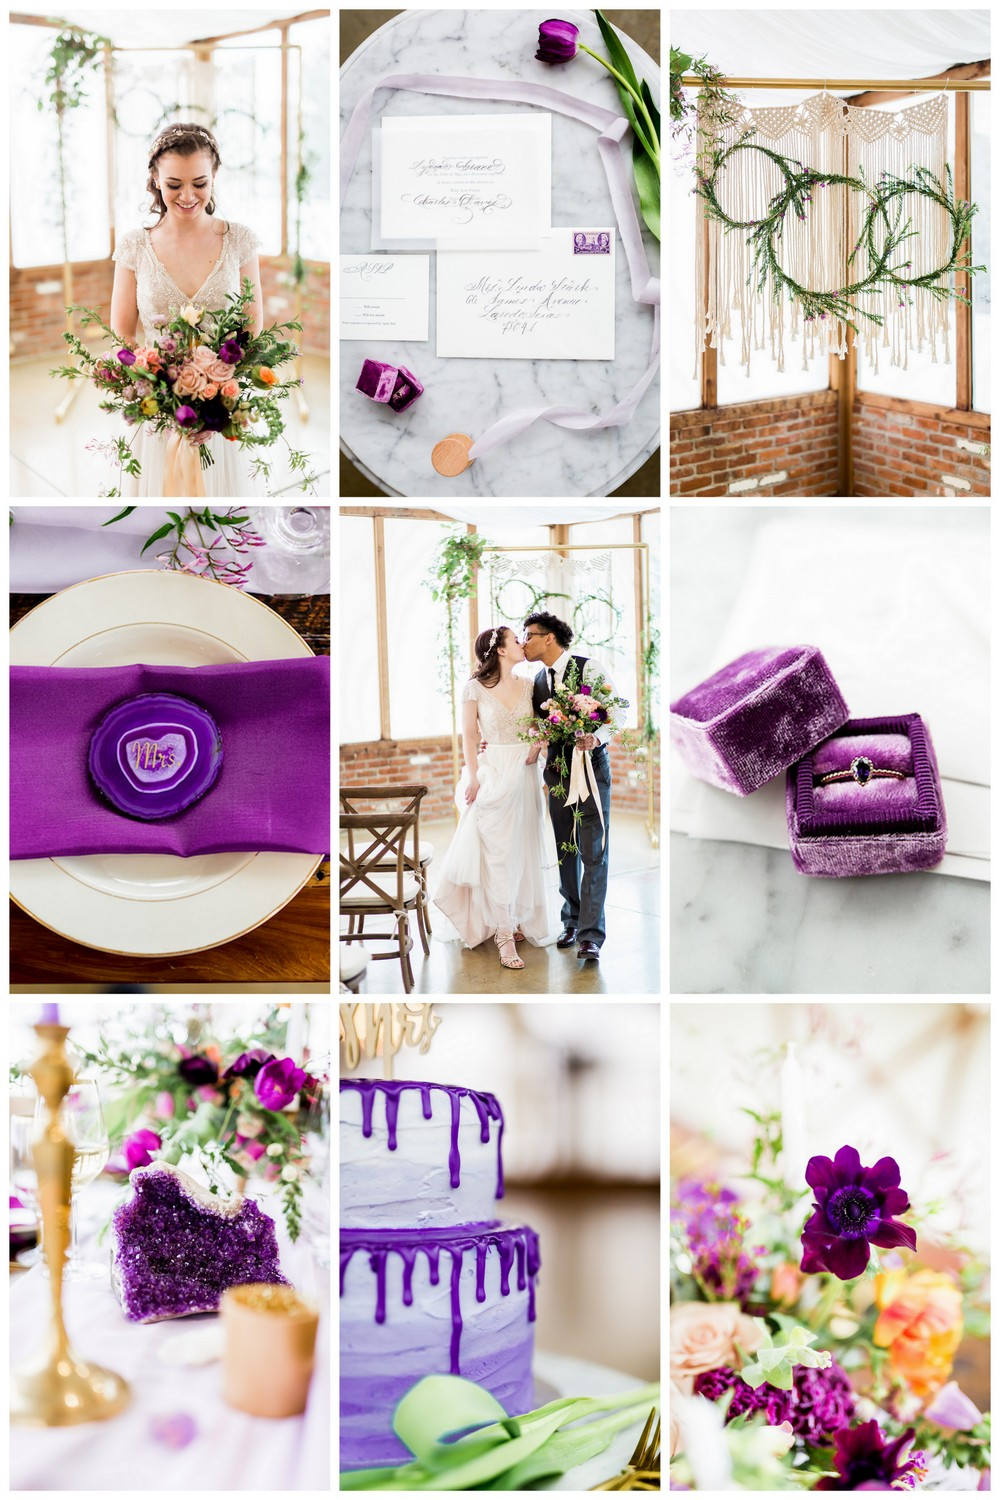 This modern indoor wedding, inspired by Pantone's Ultra Violet, is dripping with gorgeous geode deets, romantic touches and boho wedding vibes.